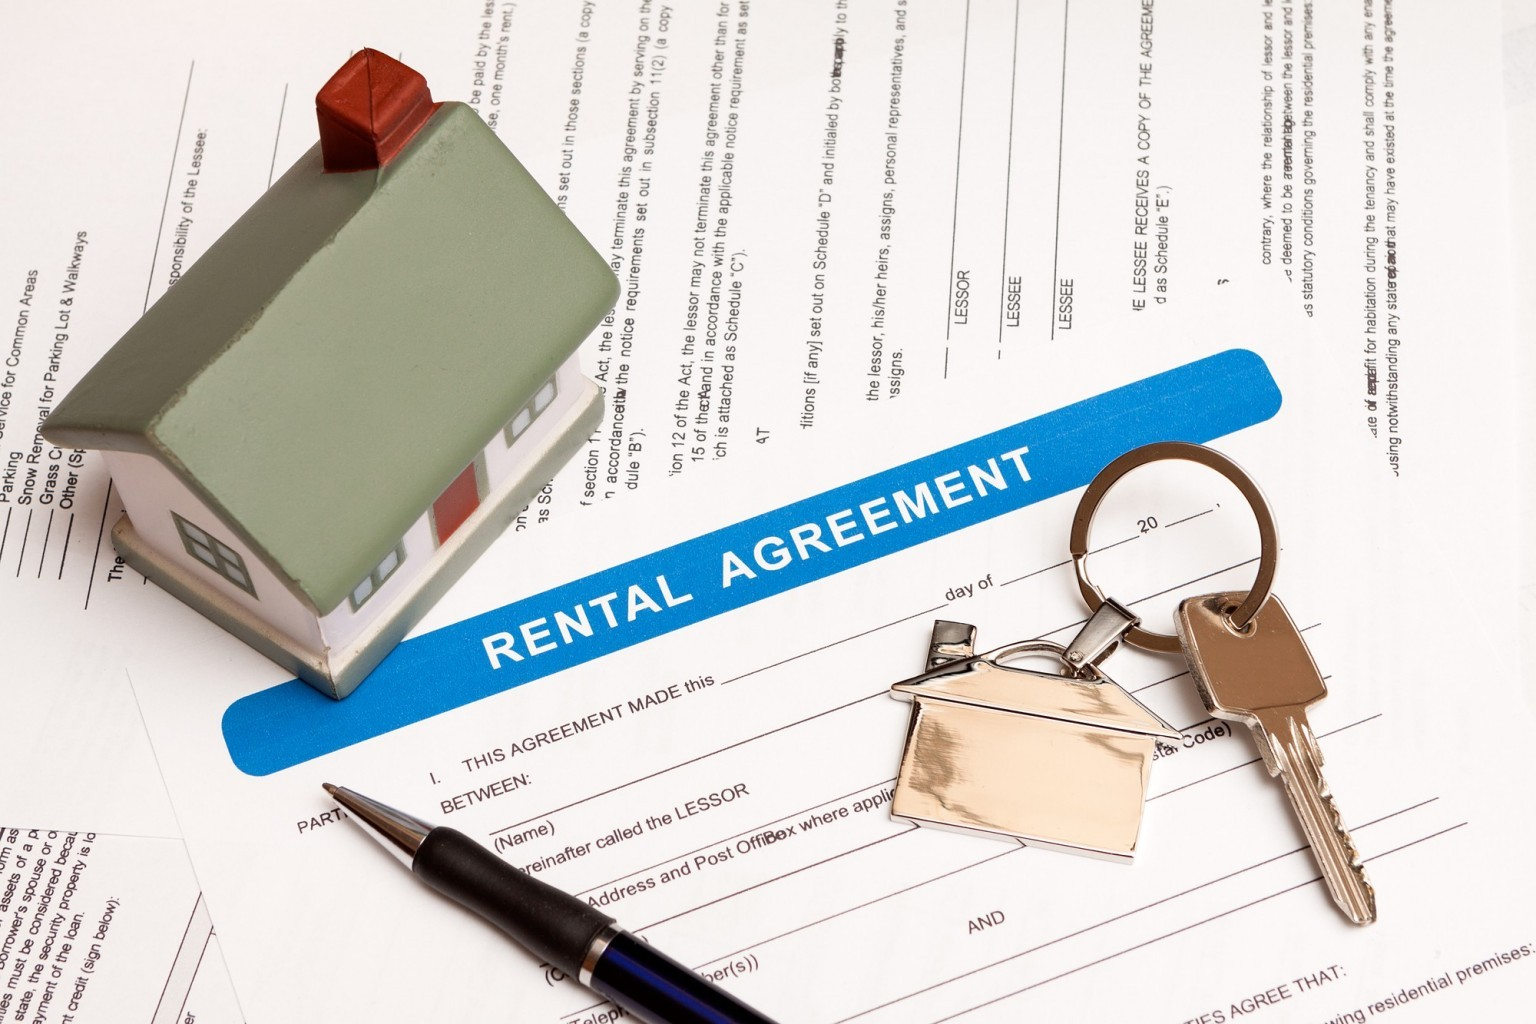 rental agreement - chaves - casa